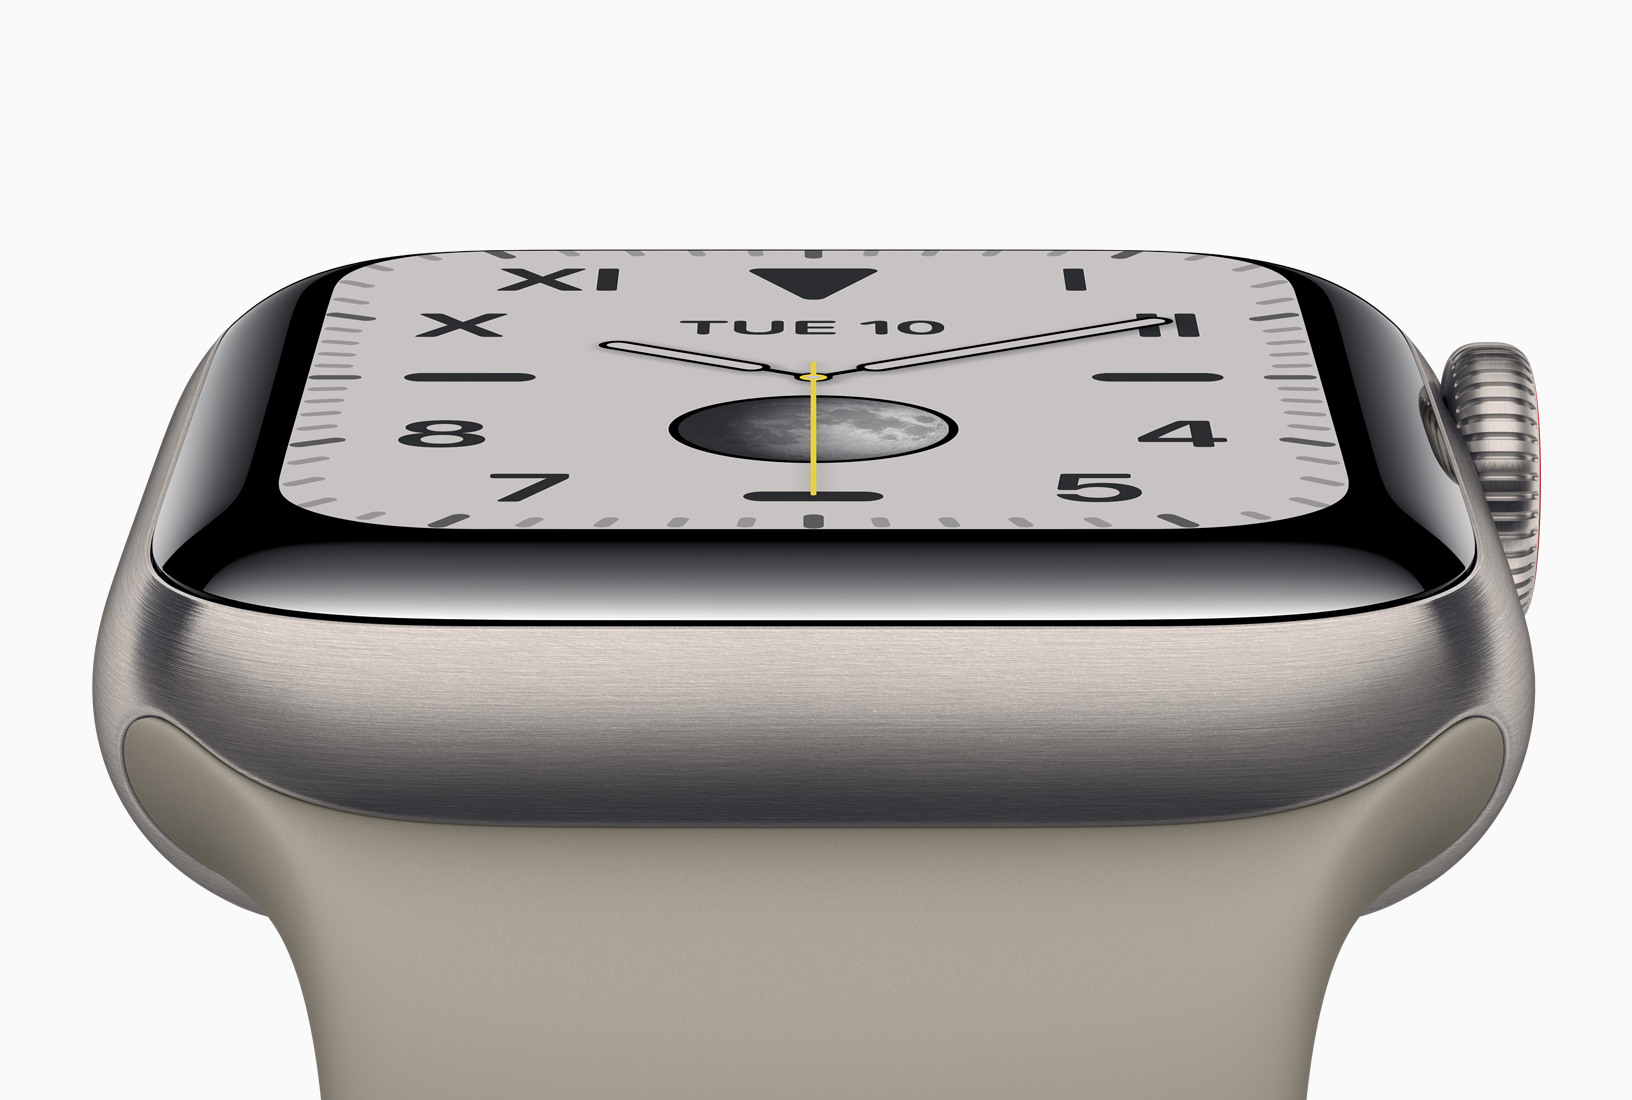 Apple_watch_series_5-new-case-material-made-of-titanium-091019.jpg